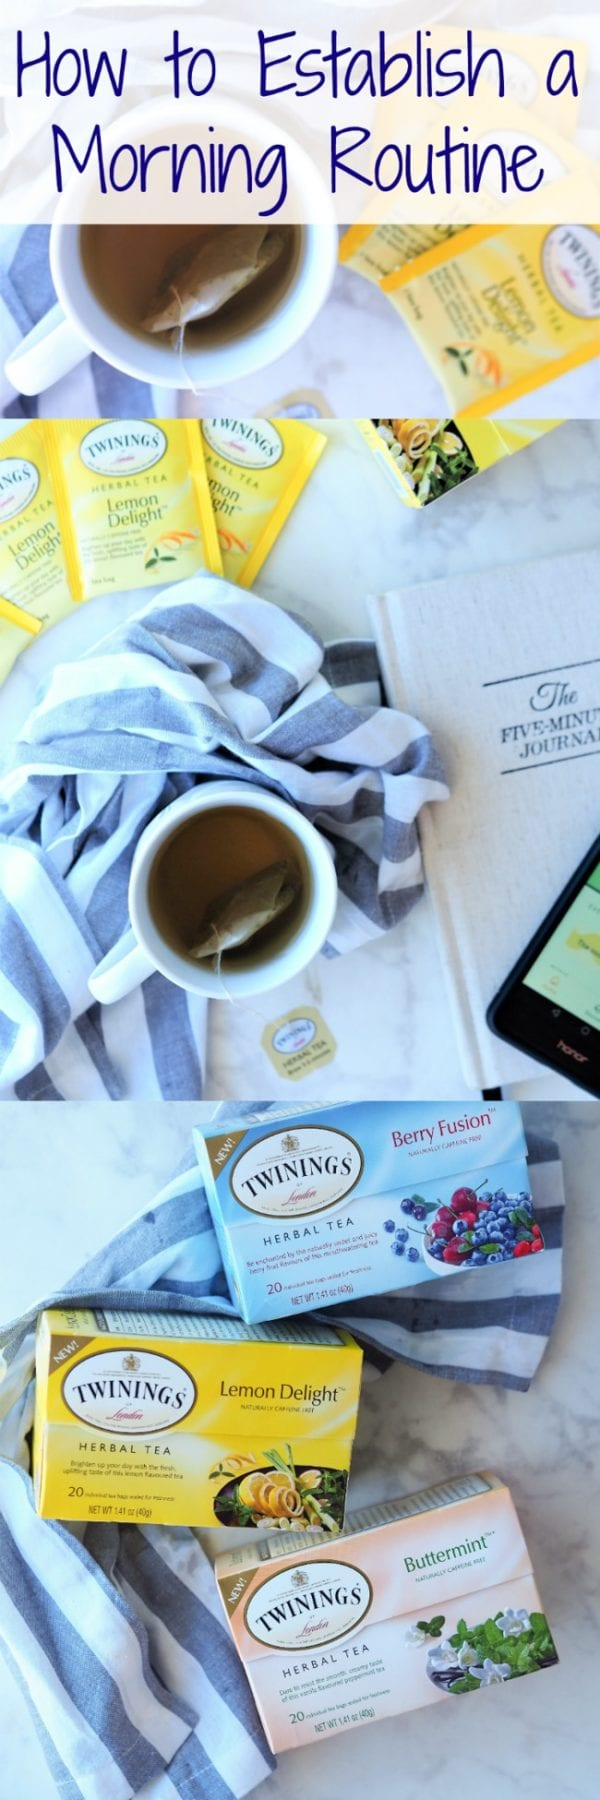 It's super important to start your day off right! Read about my morning routine – including my need for journaling, meditating, running and drinking a big cup of @TwiningsTeaUK Lemon Delight herbal blend every morning #ad #BeYourBestBlend